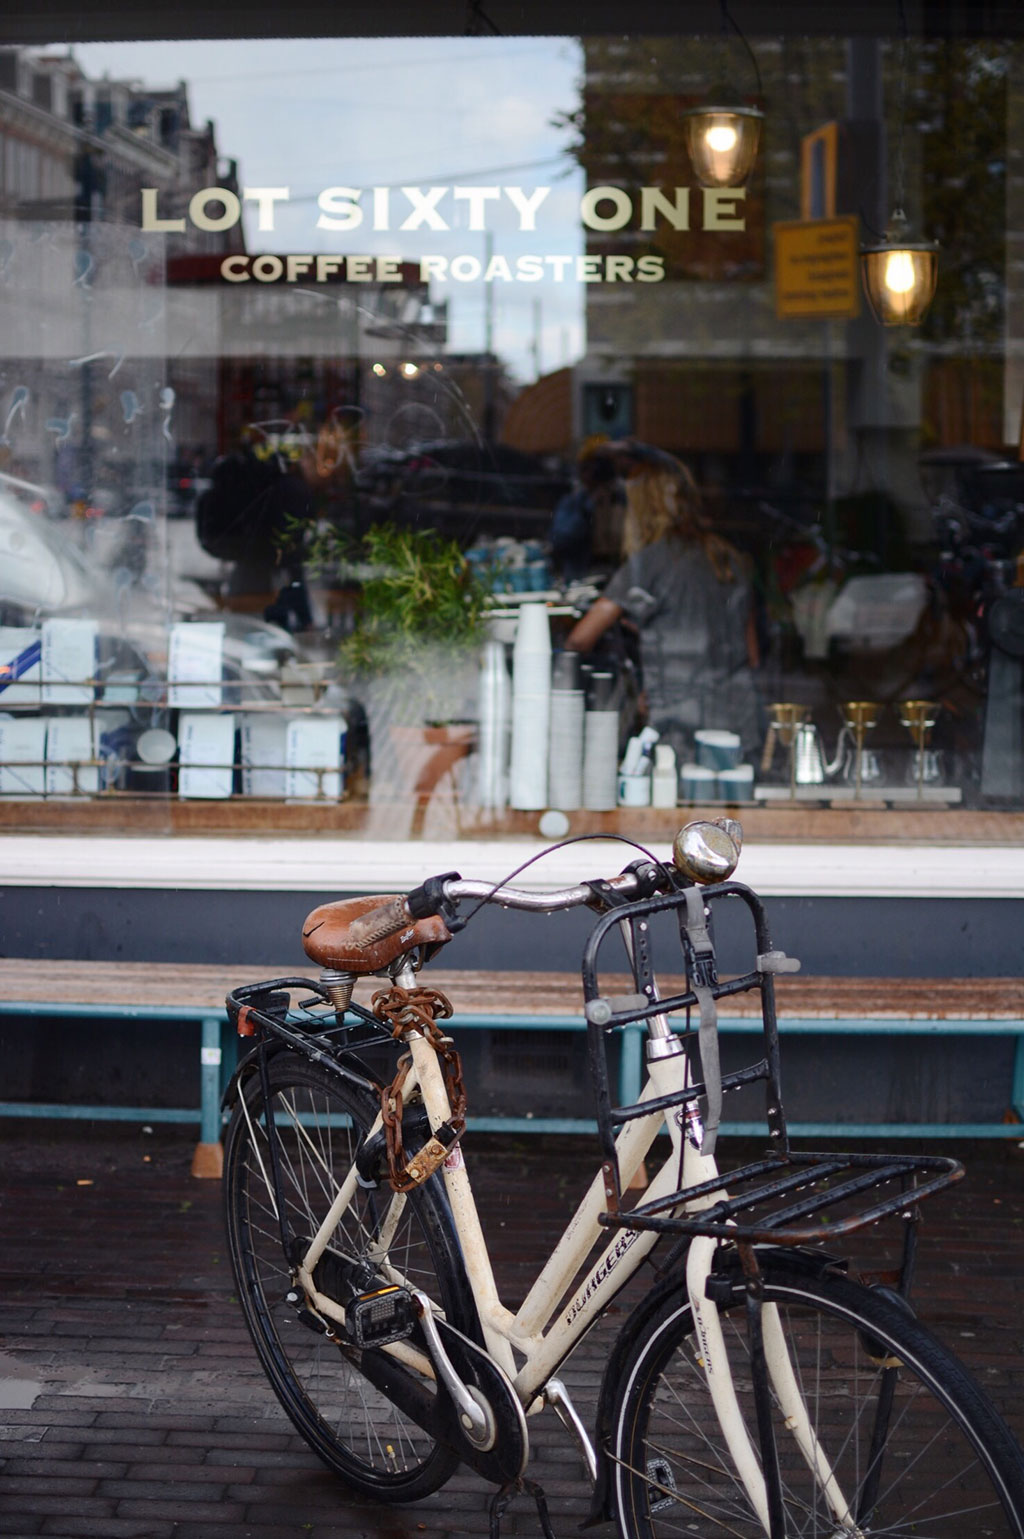 Coffee in Amsterdam Lot Sixty One Coffee Roasters